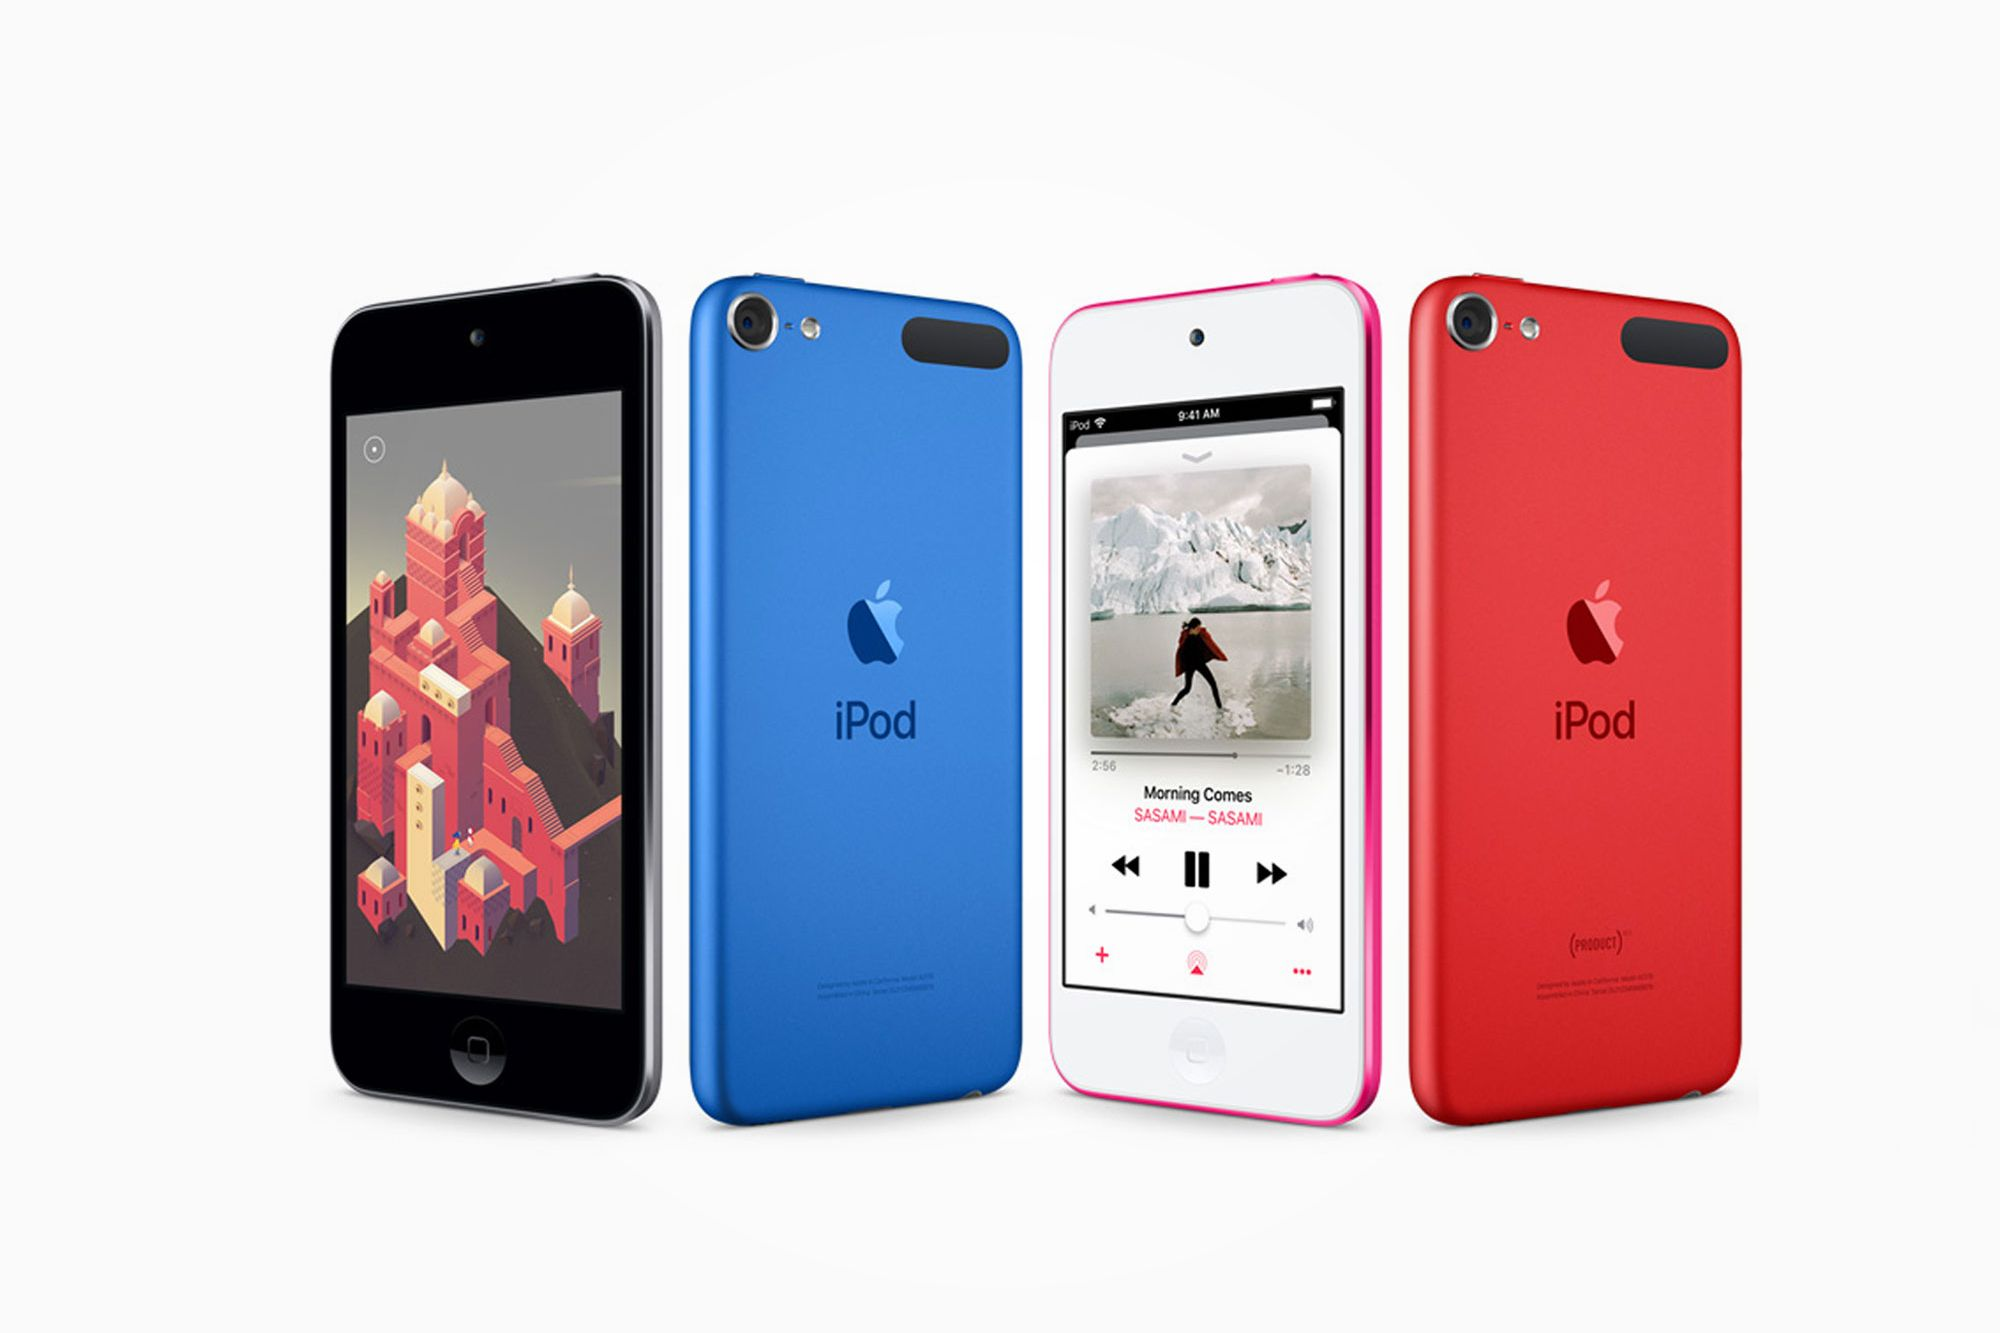 Apple Launches a New iPod Touch